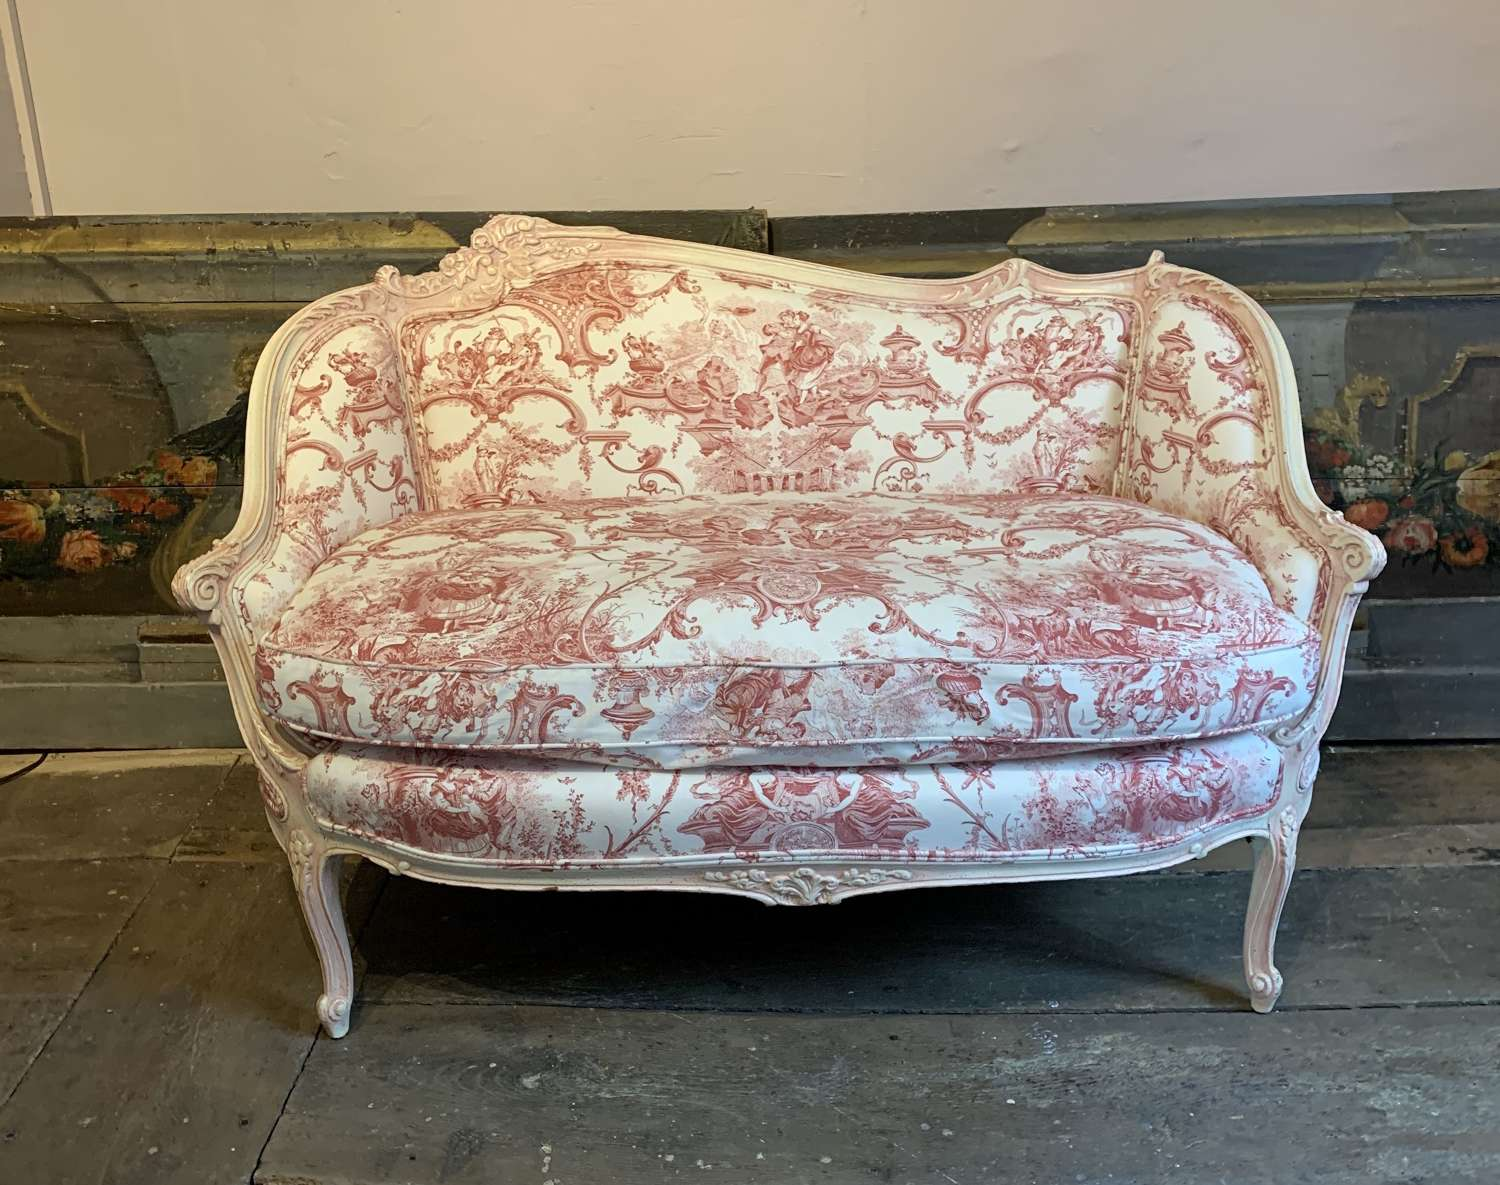 Antique French Painted Settee with Toile de Jouy Upholstery